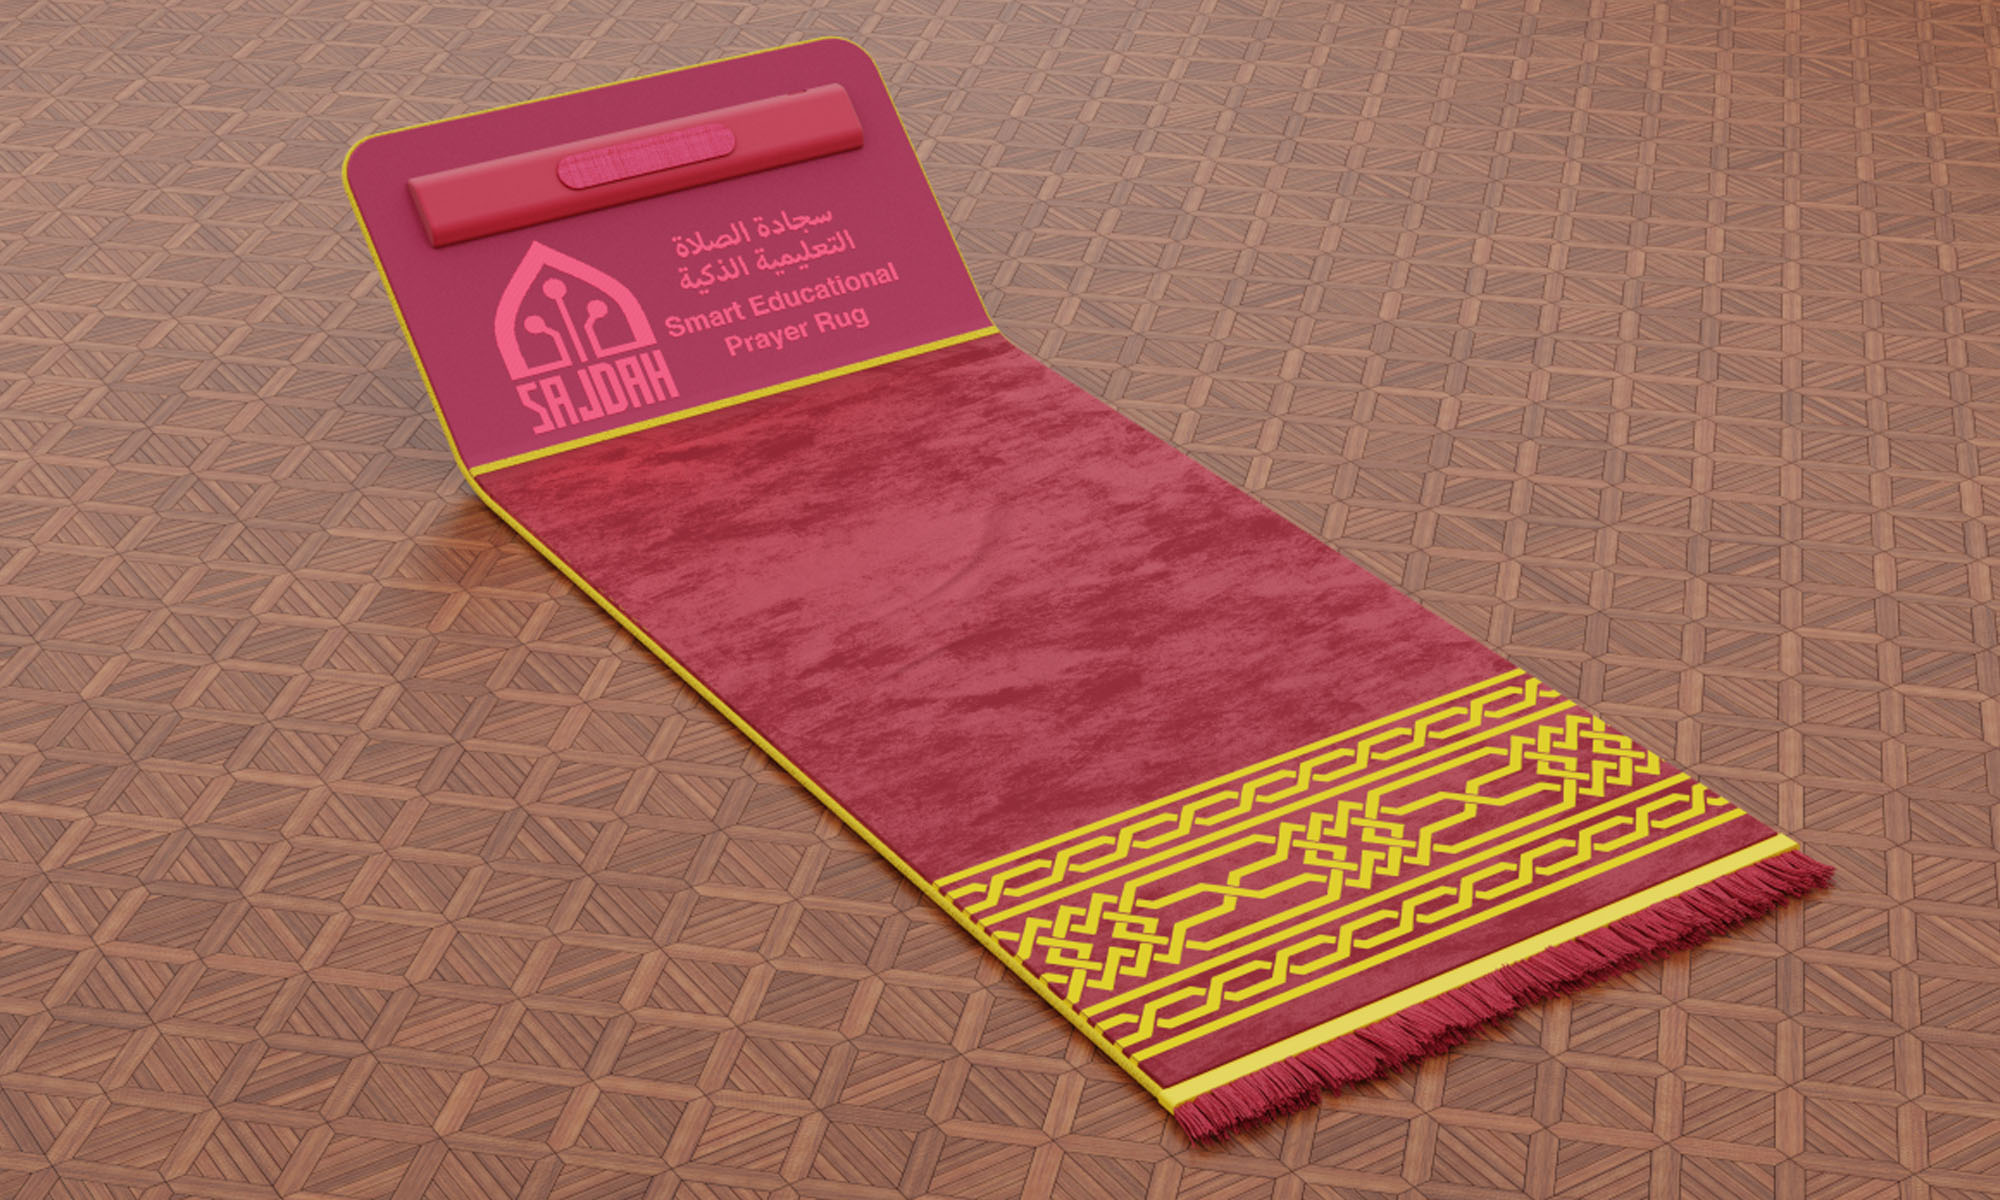 sajdah is the world's first smart rug that helps you perfect your prayers